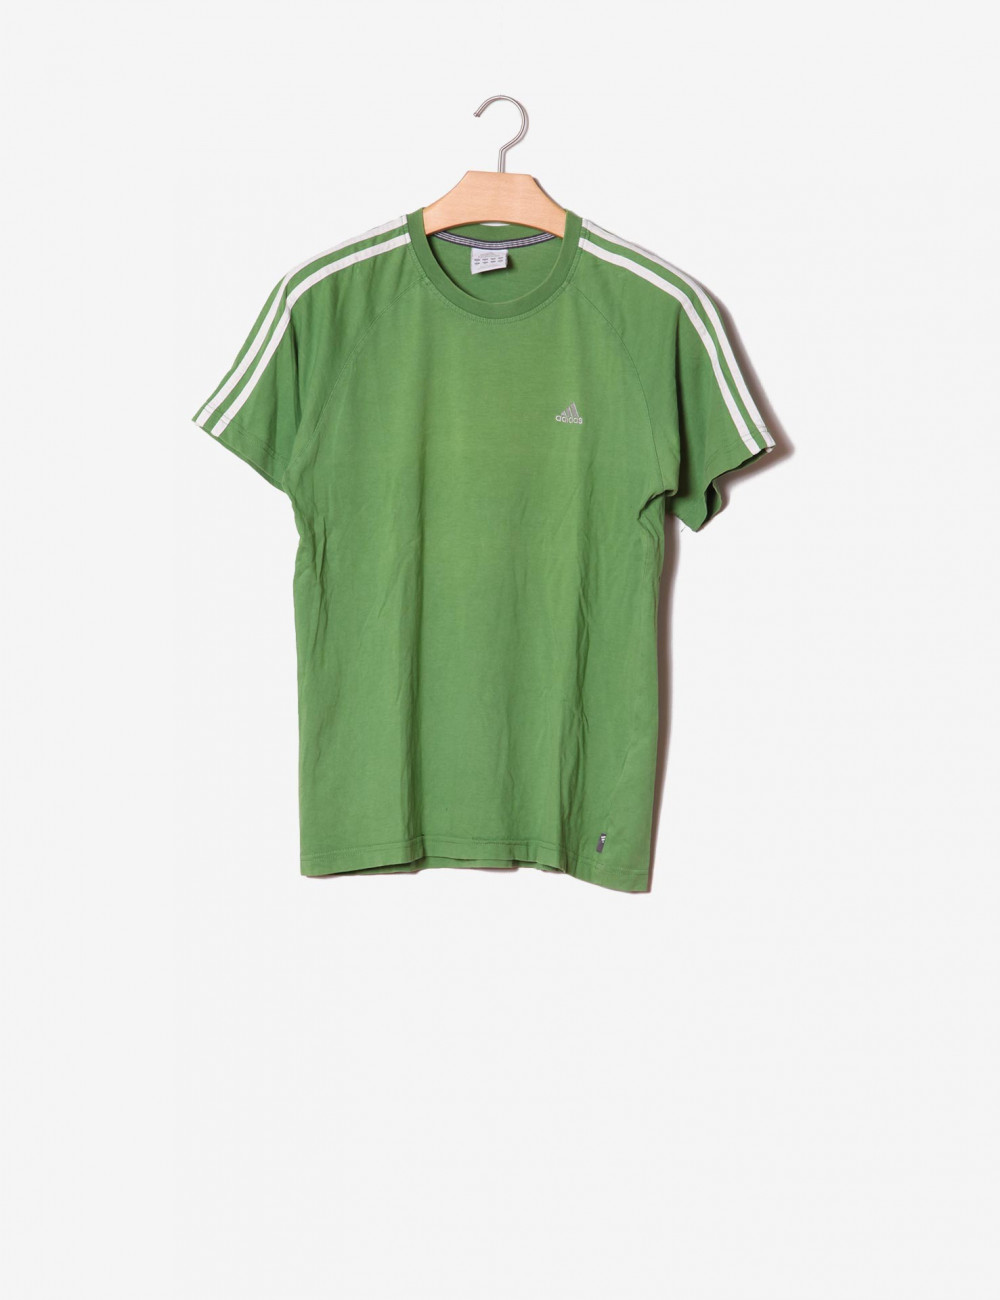 T-shirt con bande laterali-Adidas-frontale.jpg